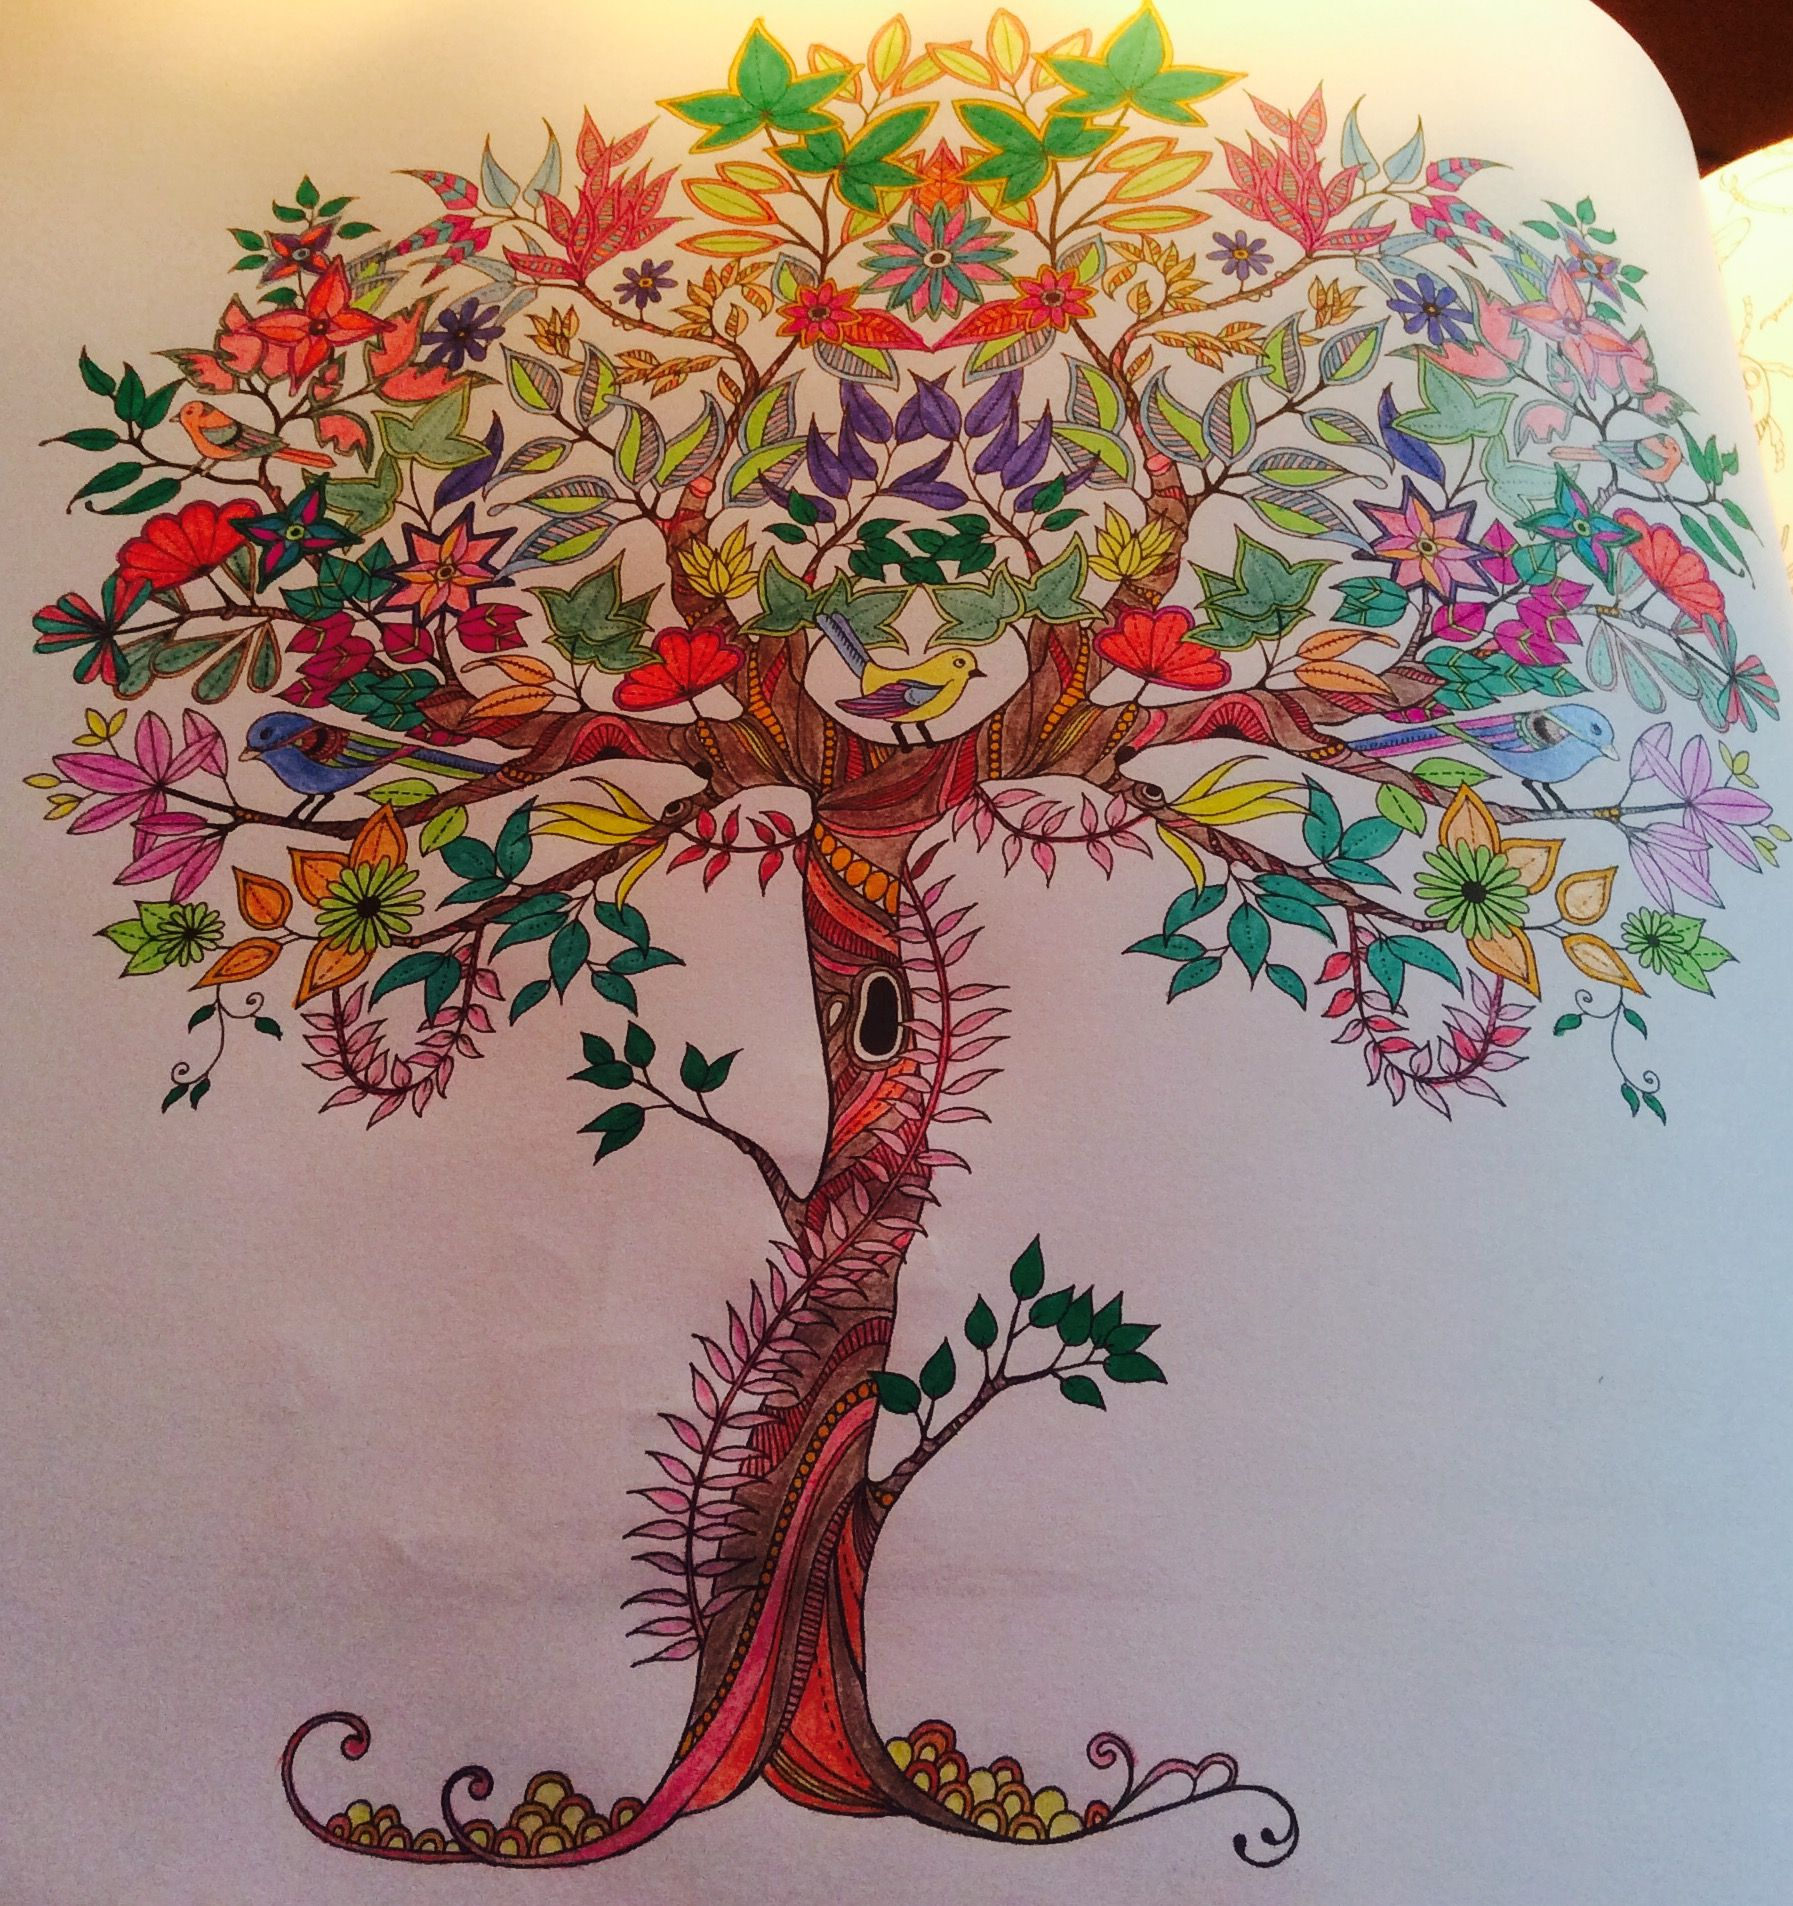 From Johanna Basford Secret Garden Colouring Book